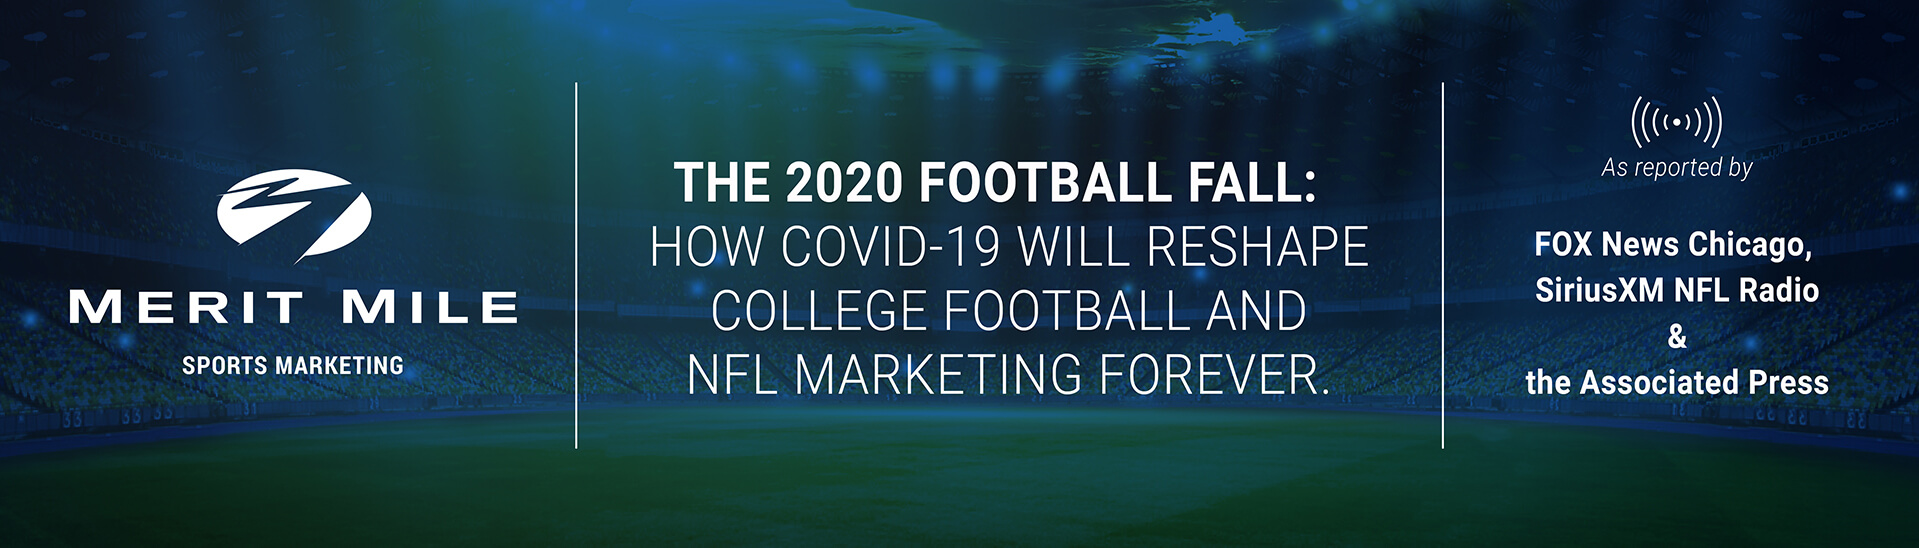 How COVID-19 Will Reshape College Football and NFL Marketing Forever